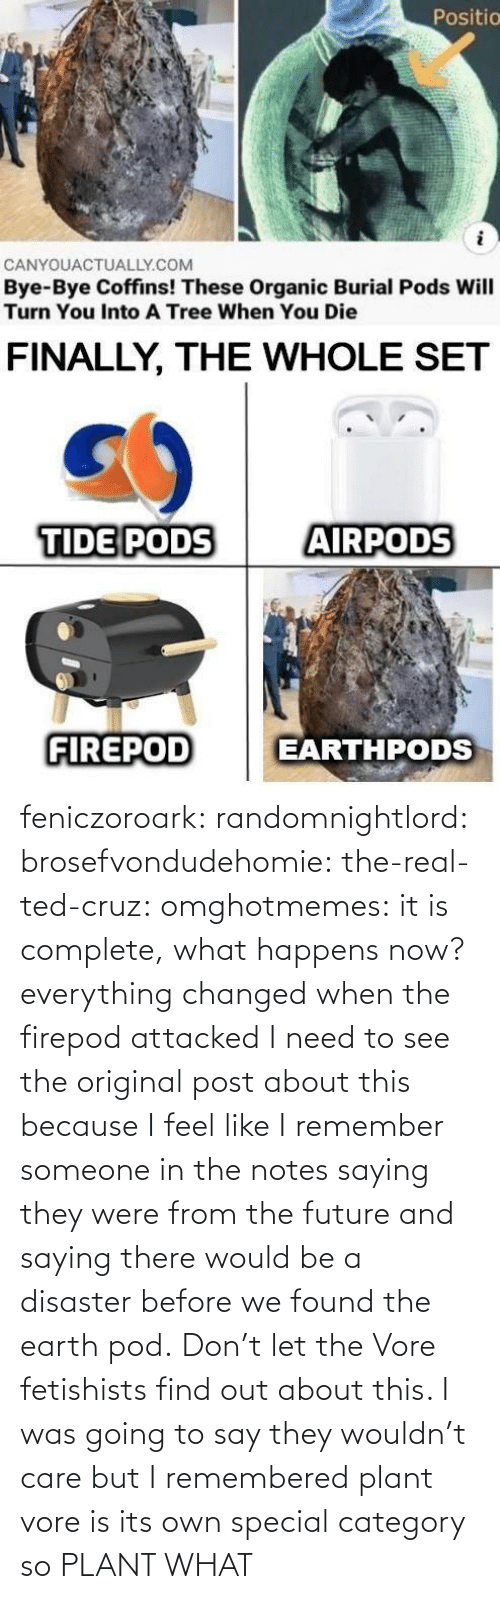 Because I: feniczoroark:  randomnightlord:  brosefvondudehomie: the-real-ted-cruz:  omghotmemes: it is complete, what happens now? everything changed when the firepod attacked    I need to see the original post about this because I feel like I remember someone in the notes saying they were from the future and saying there would be a disaster before we found the earth pod.    Don't let the Vore fetishists find out about this.    I was going to say they wouldn't care but I remembered plant vore is its own special category so   PLANT WHAT